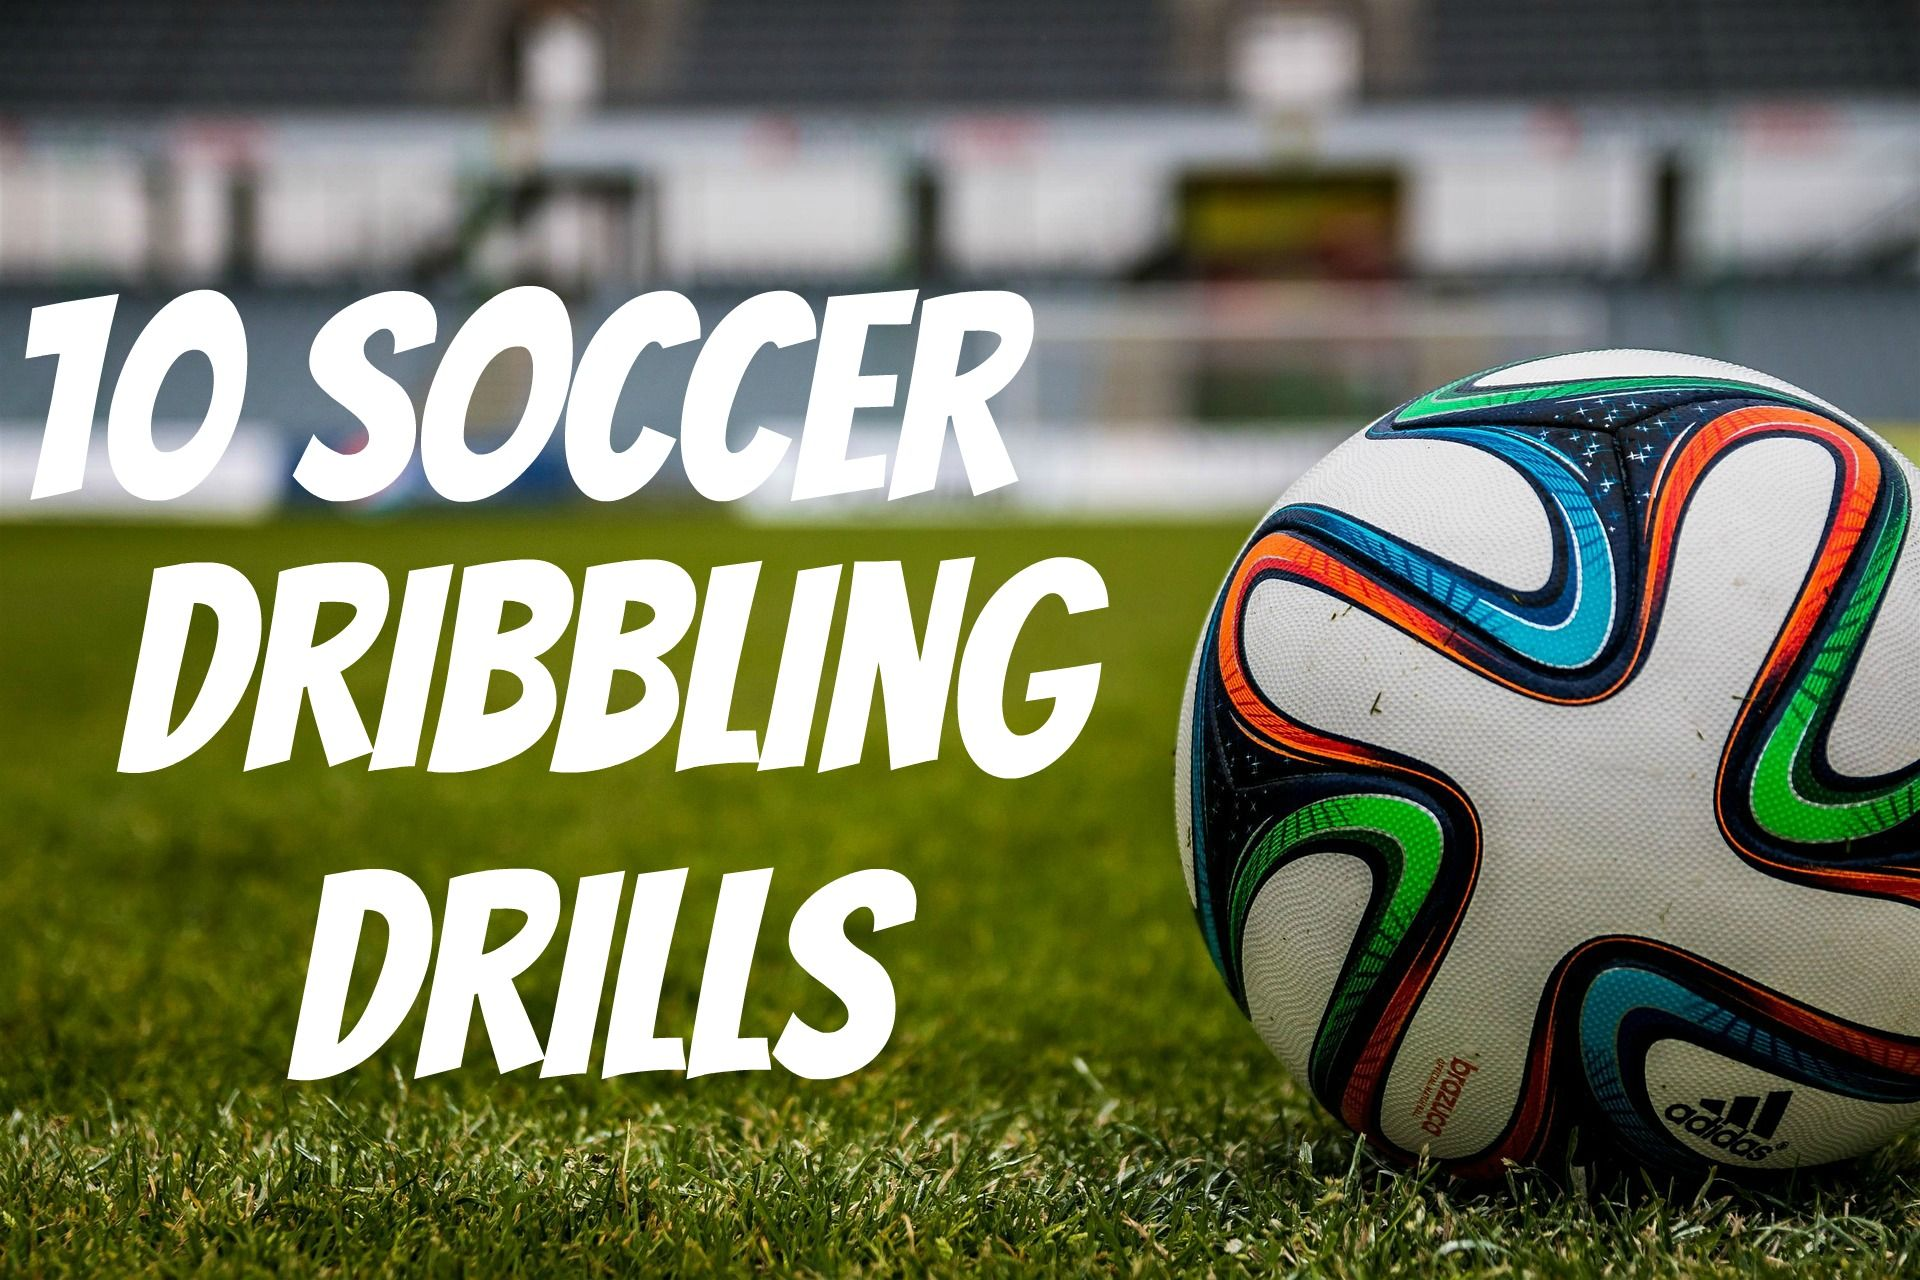 10 soccer dribbling drills to help with creativity http